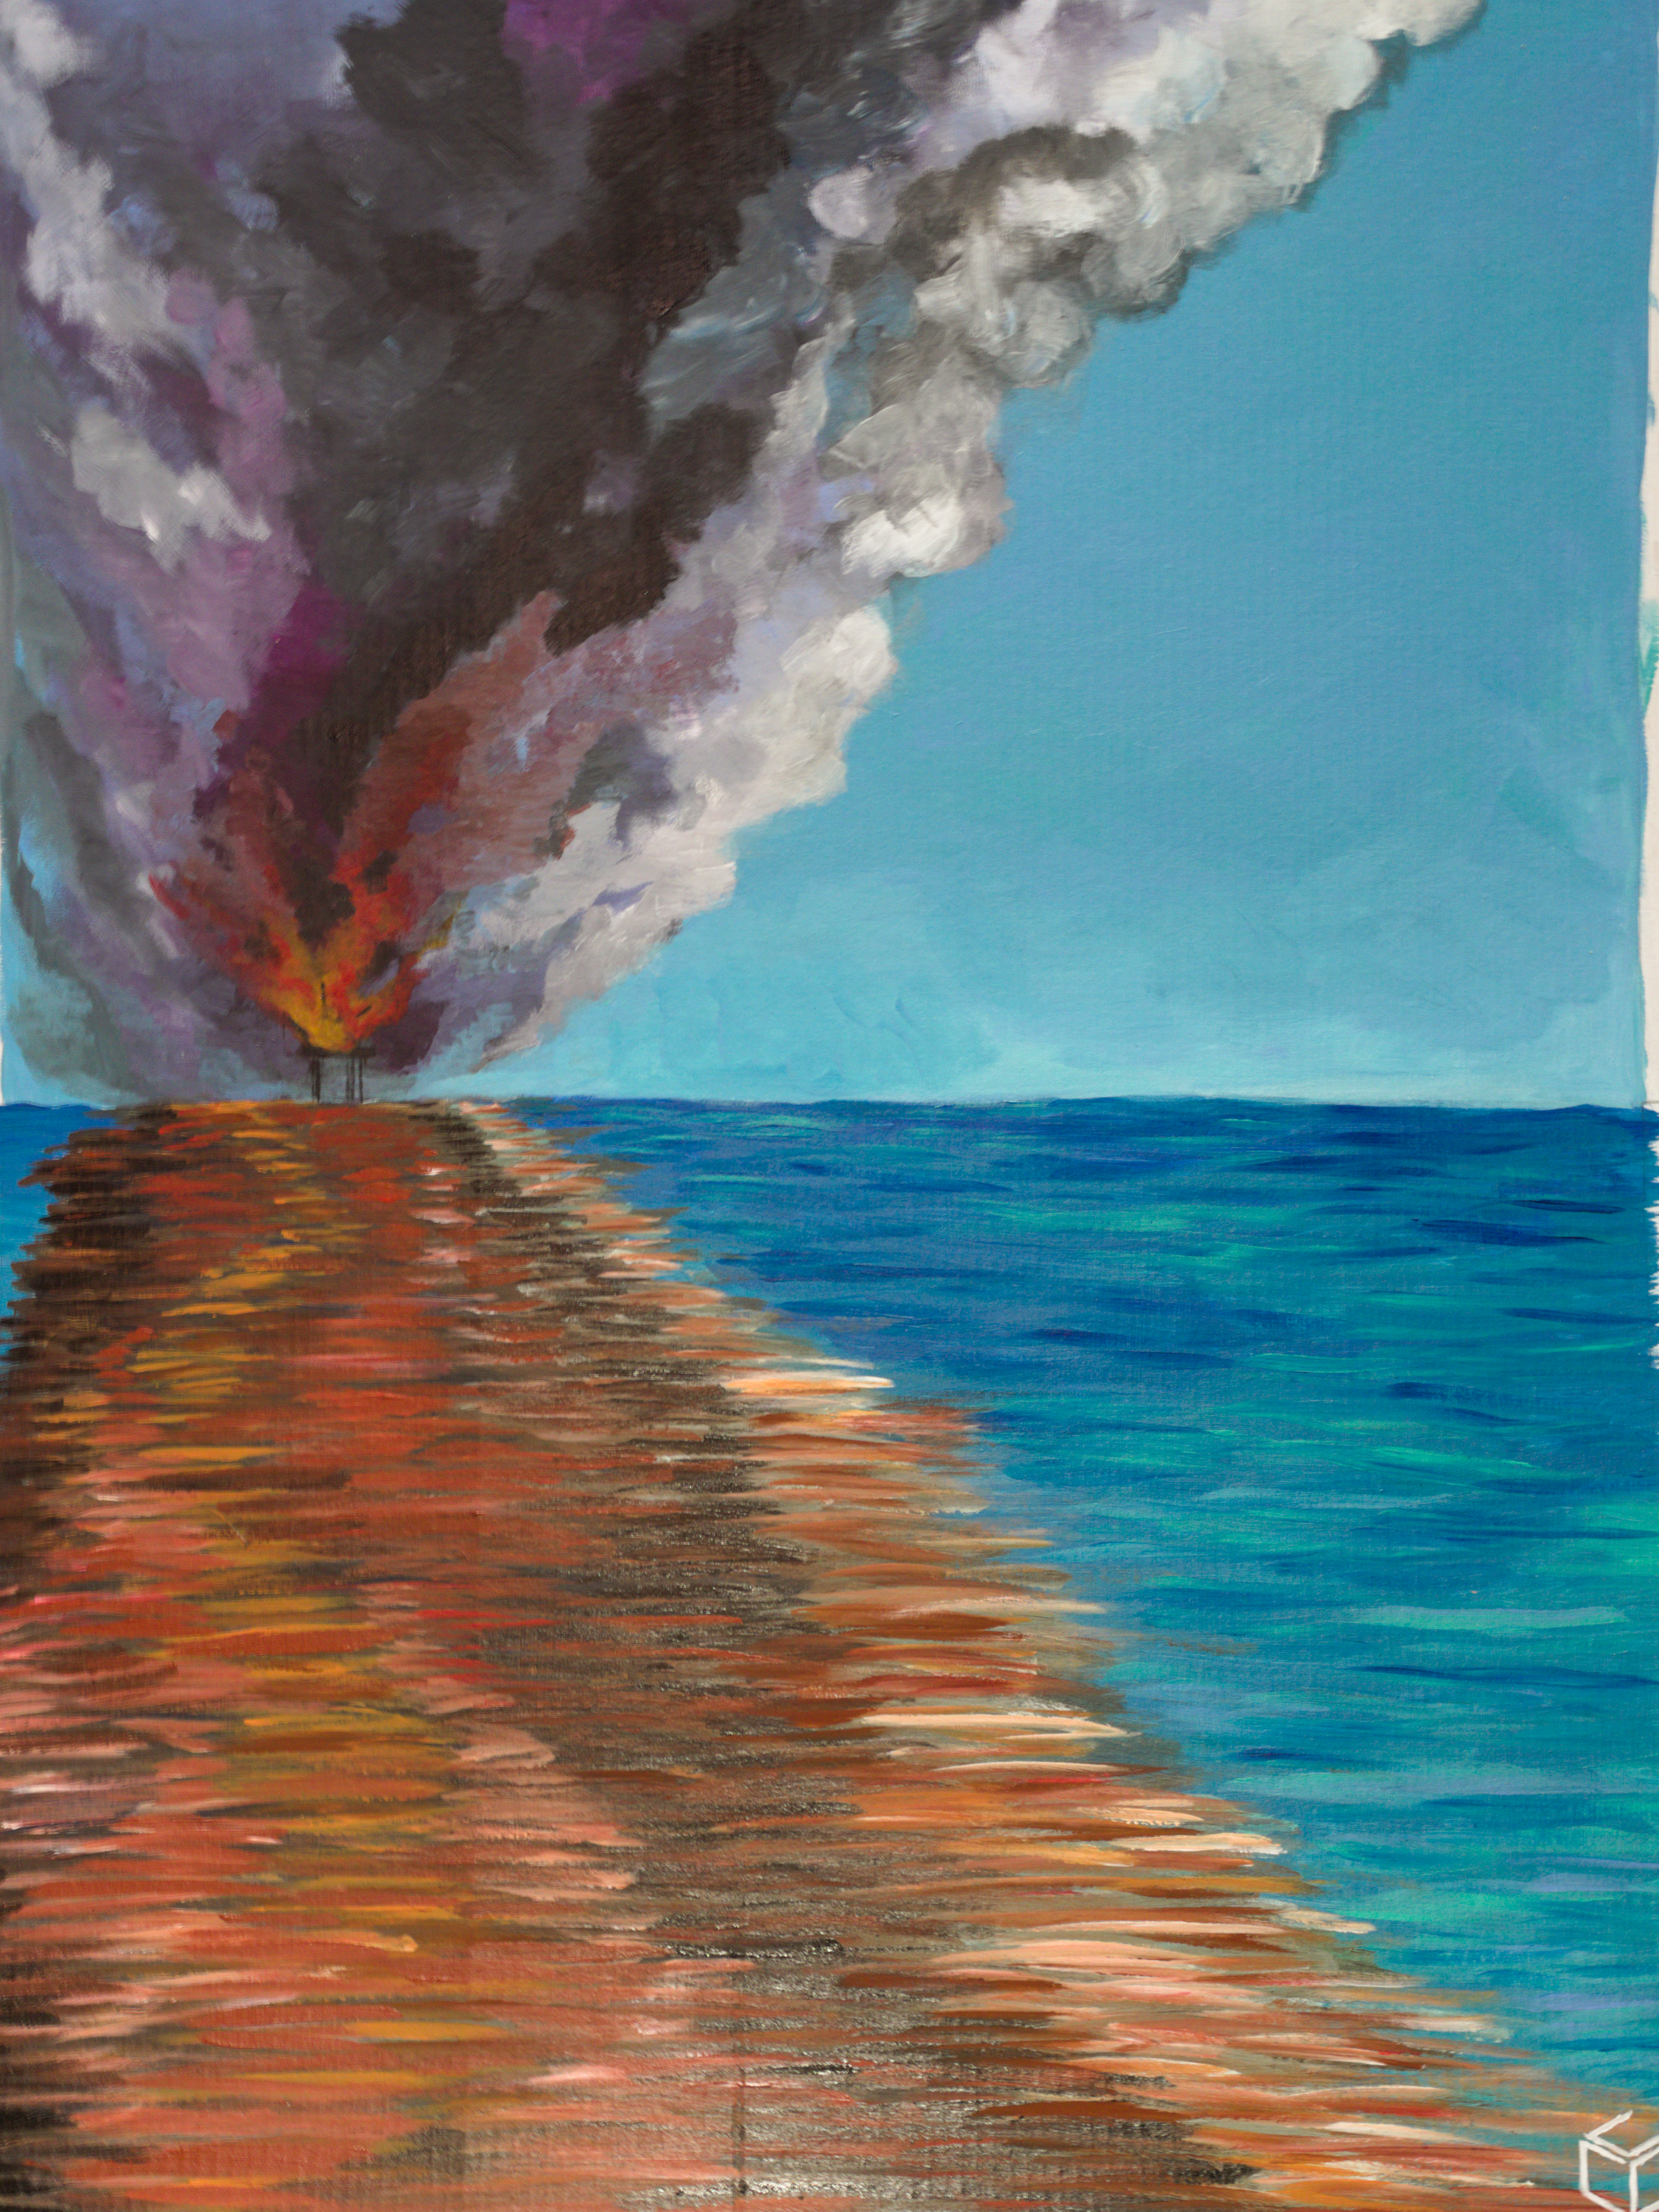 An impressionist-style painting of a blue ocean and sky. On the horizon, a burning oil rig has turned the air and water around it smoky and reddish.